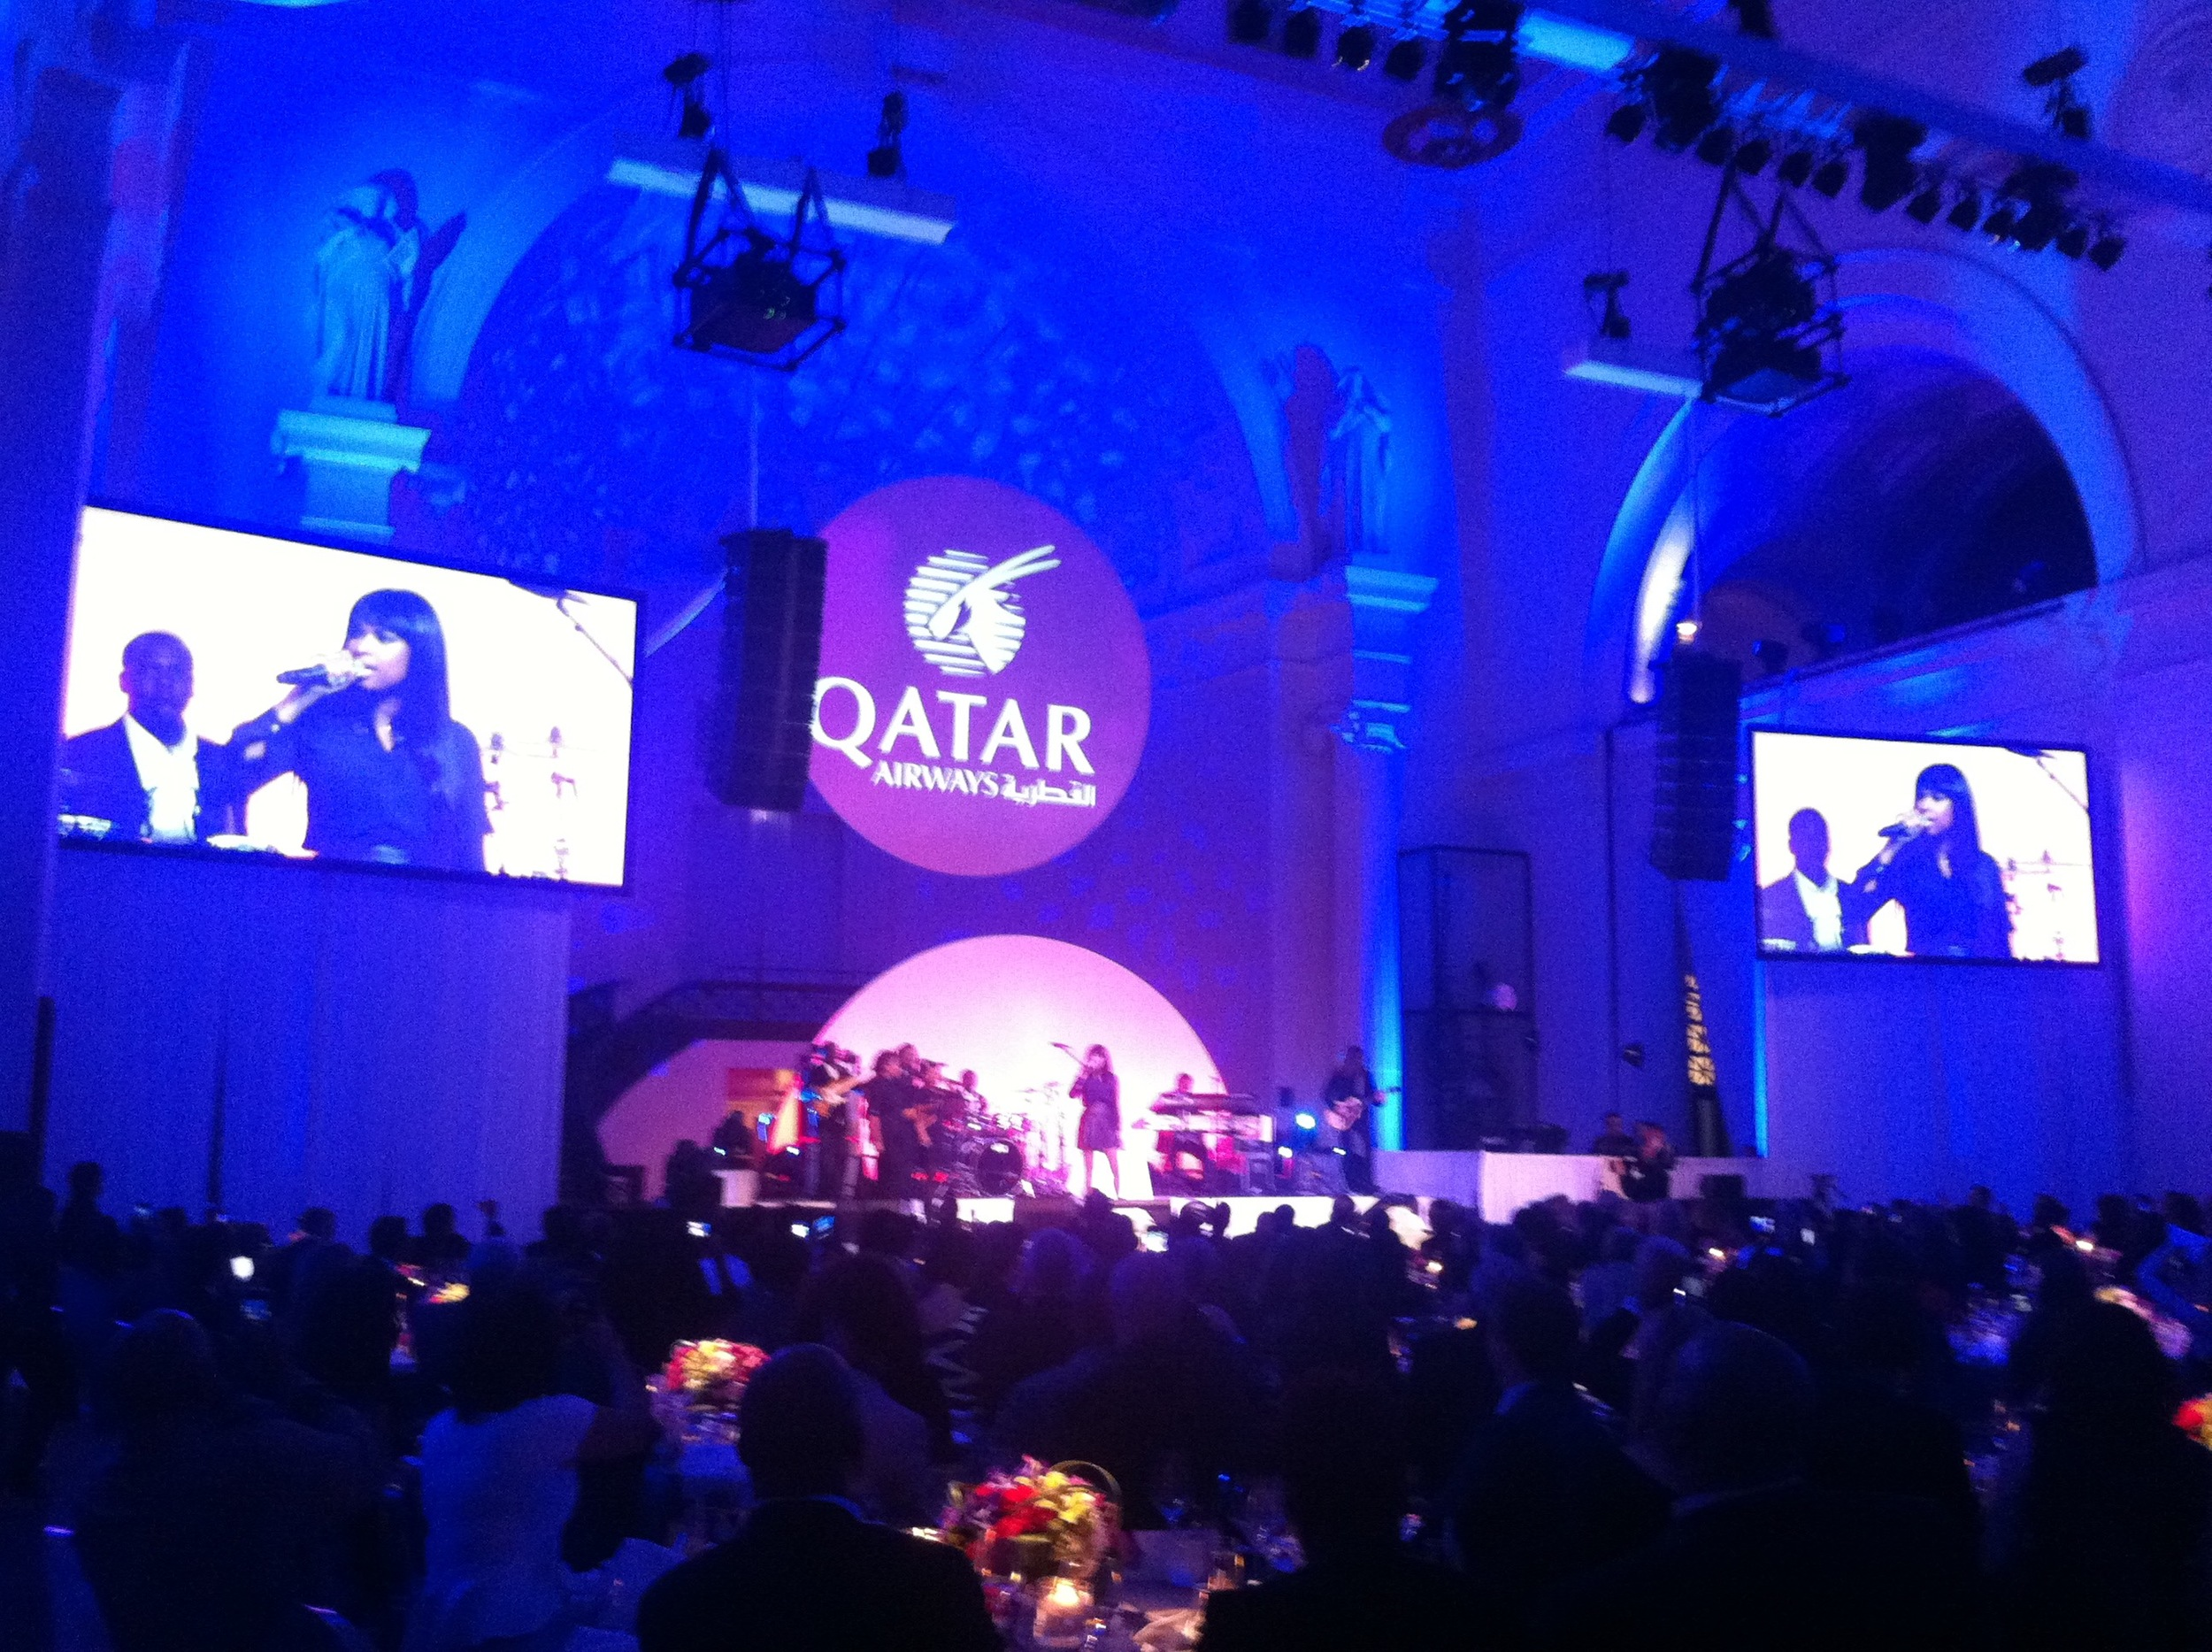 Event Producer and guest DJ for Qatar Airlines launch event at Field Museum Chicago. Jennifer Hudson performs in photo.